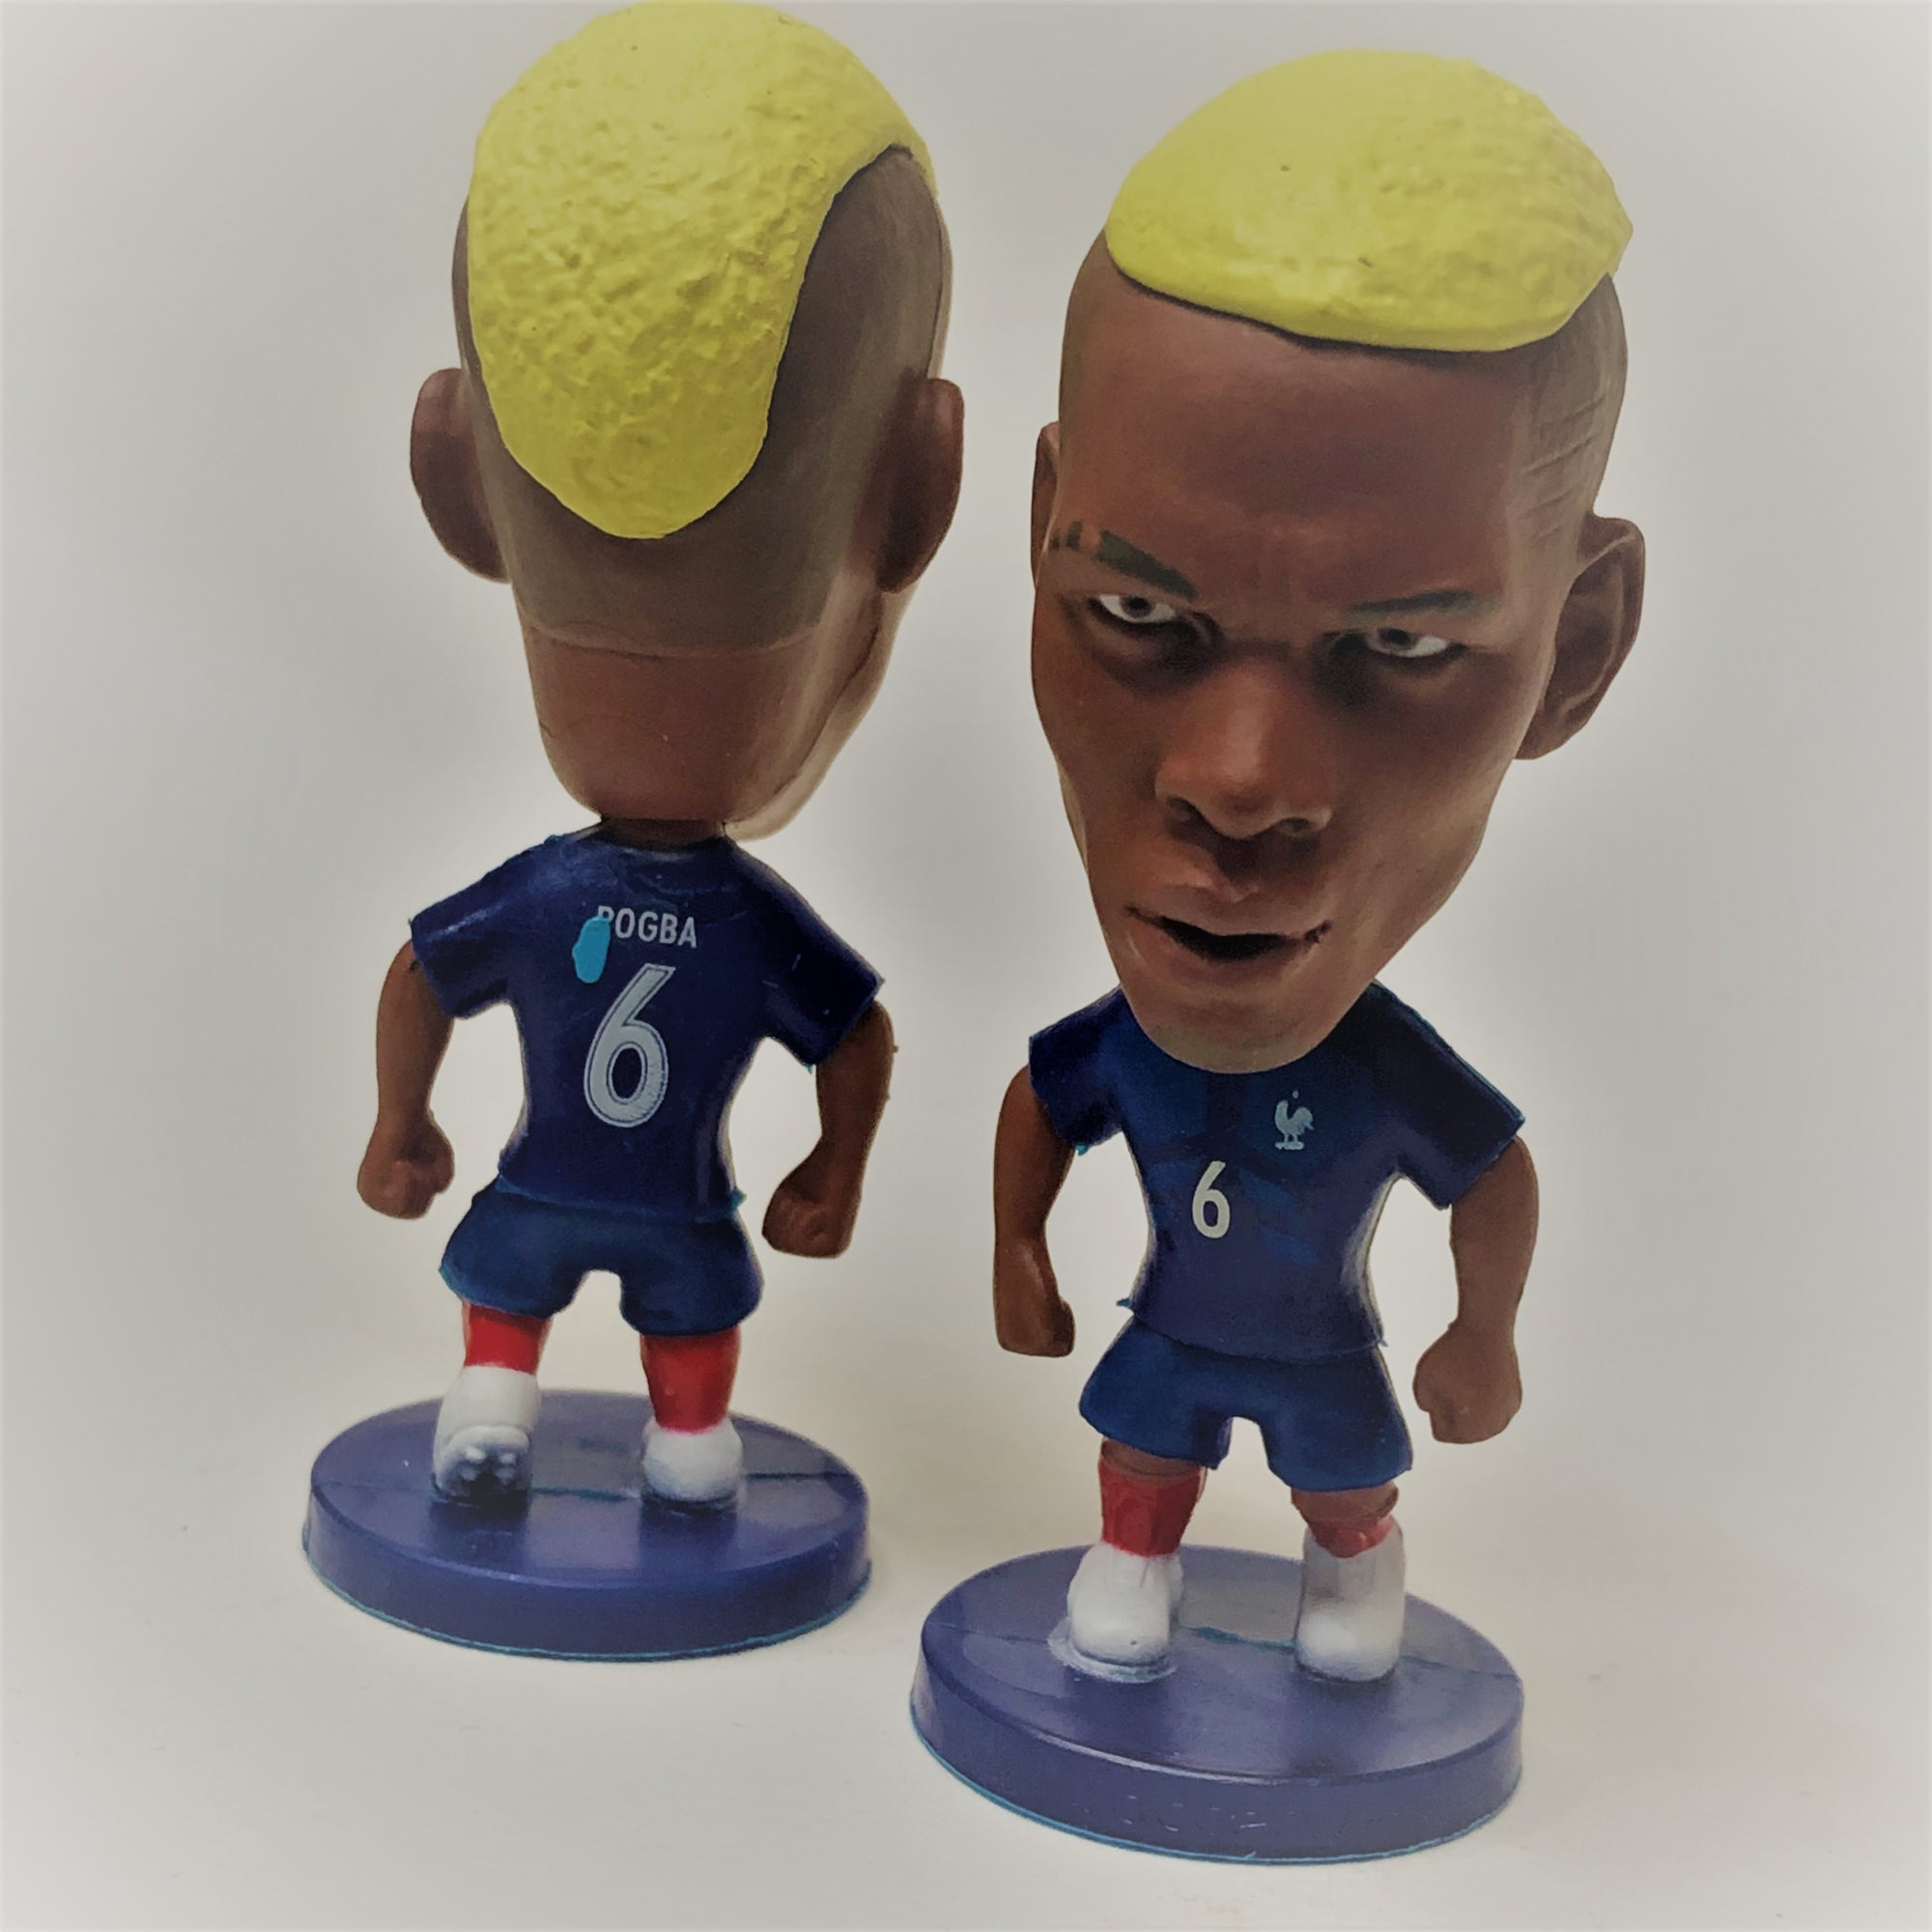 Pogba France Figurine